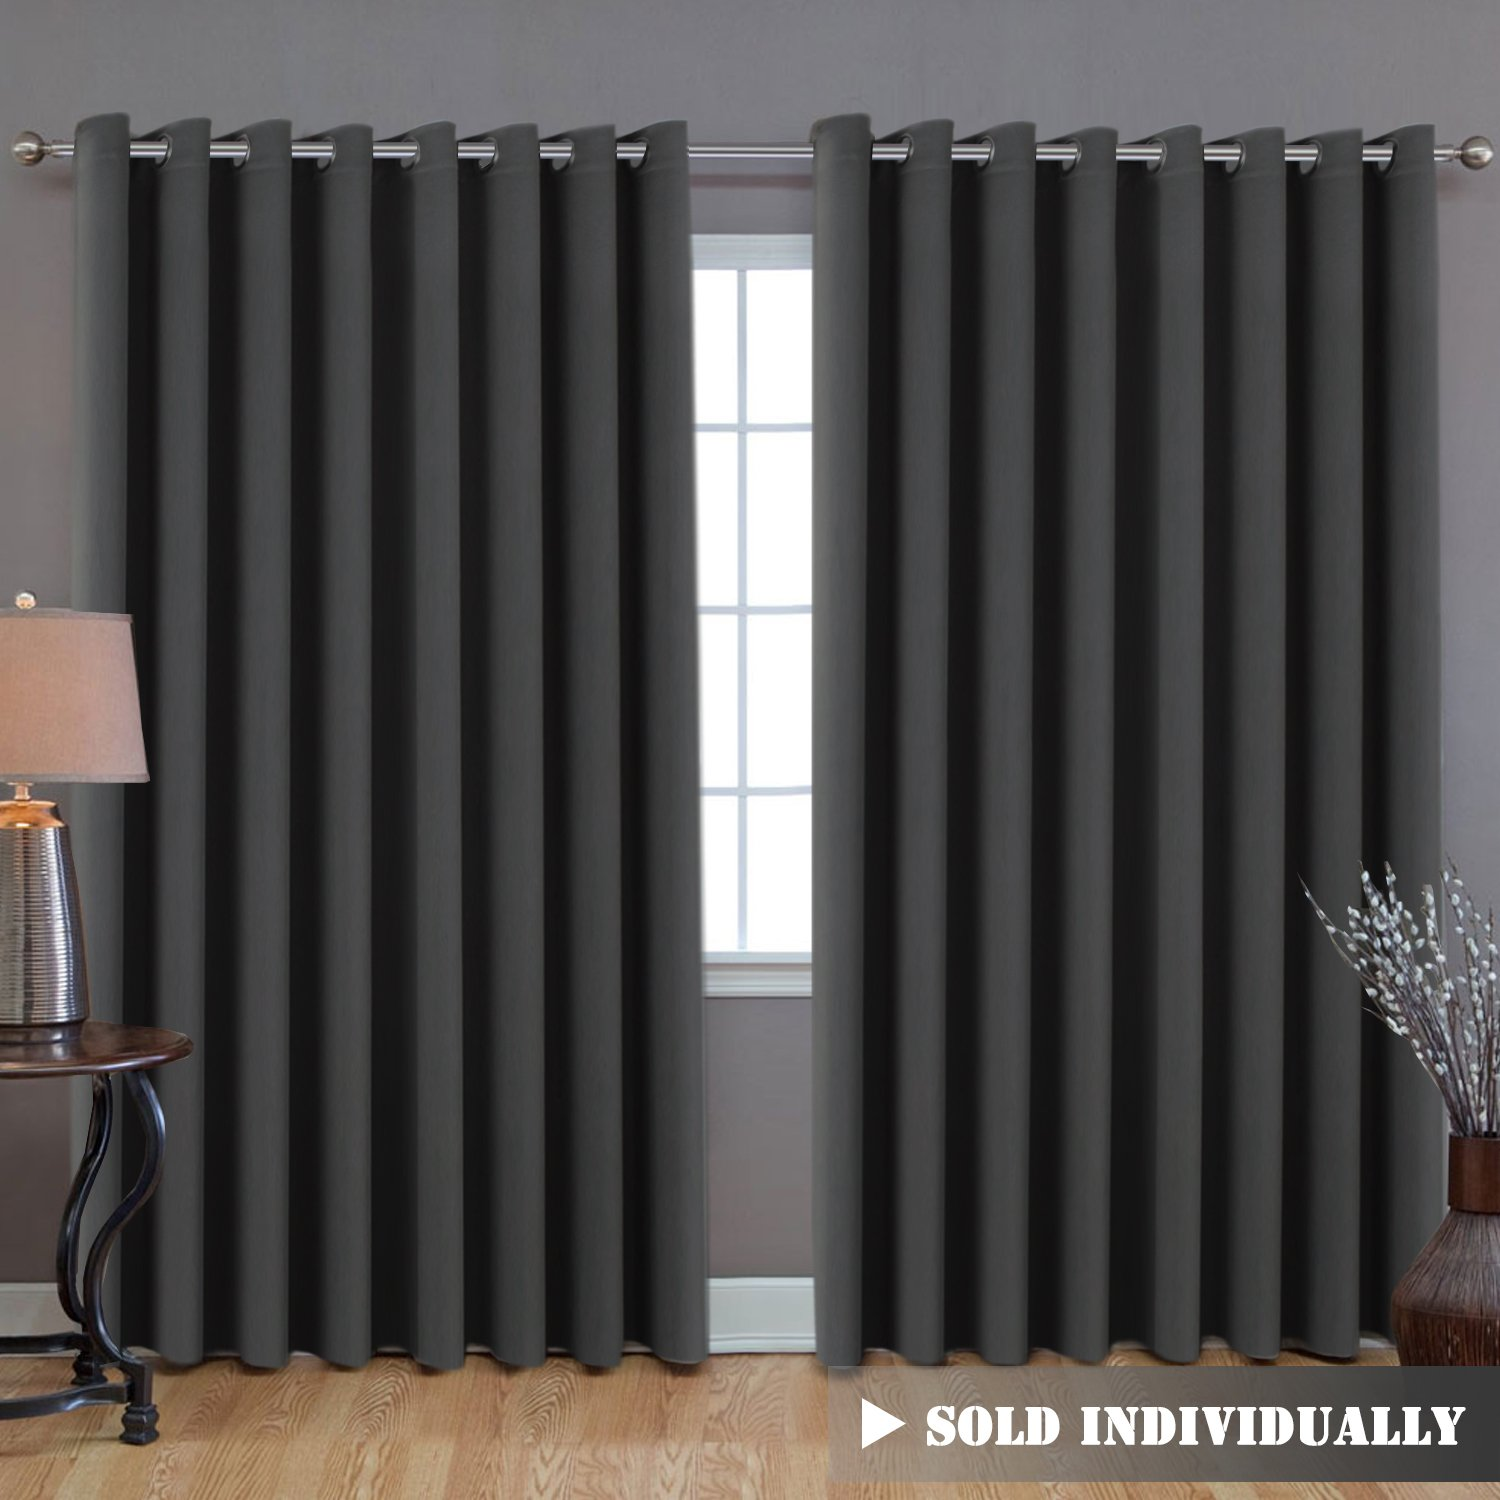 Extra Long and Wide Blackout Curtains, Thermal Insulated Premium Room Divider (Total Privacy, 9' Tall by 8.5' Wide -Grommet Wider Curtain Large Size 100 W by 108 L-Charcoal Gray H.Versailtex